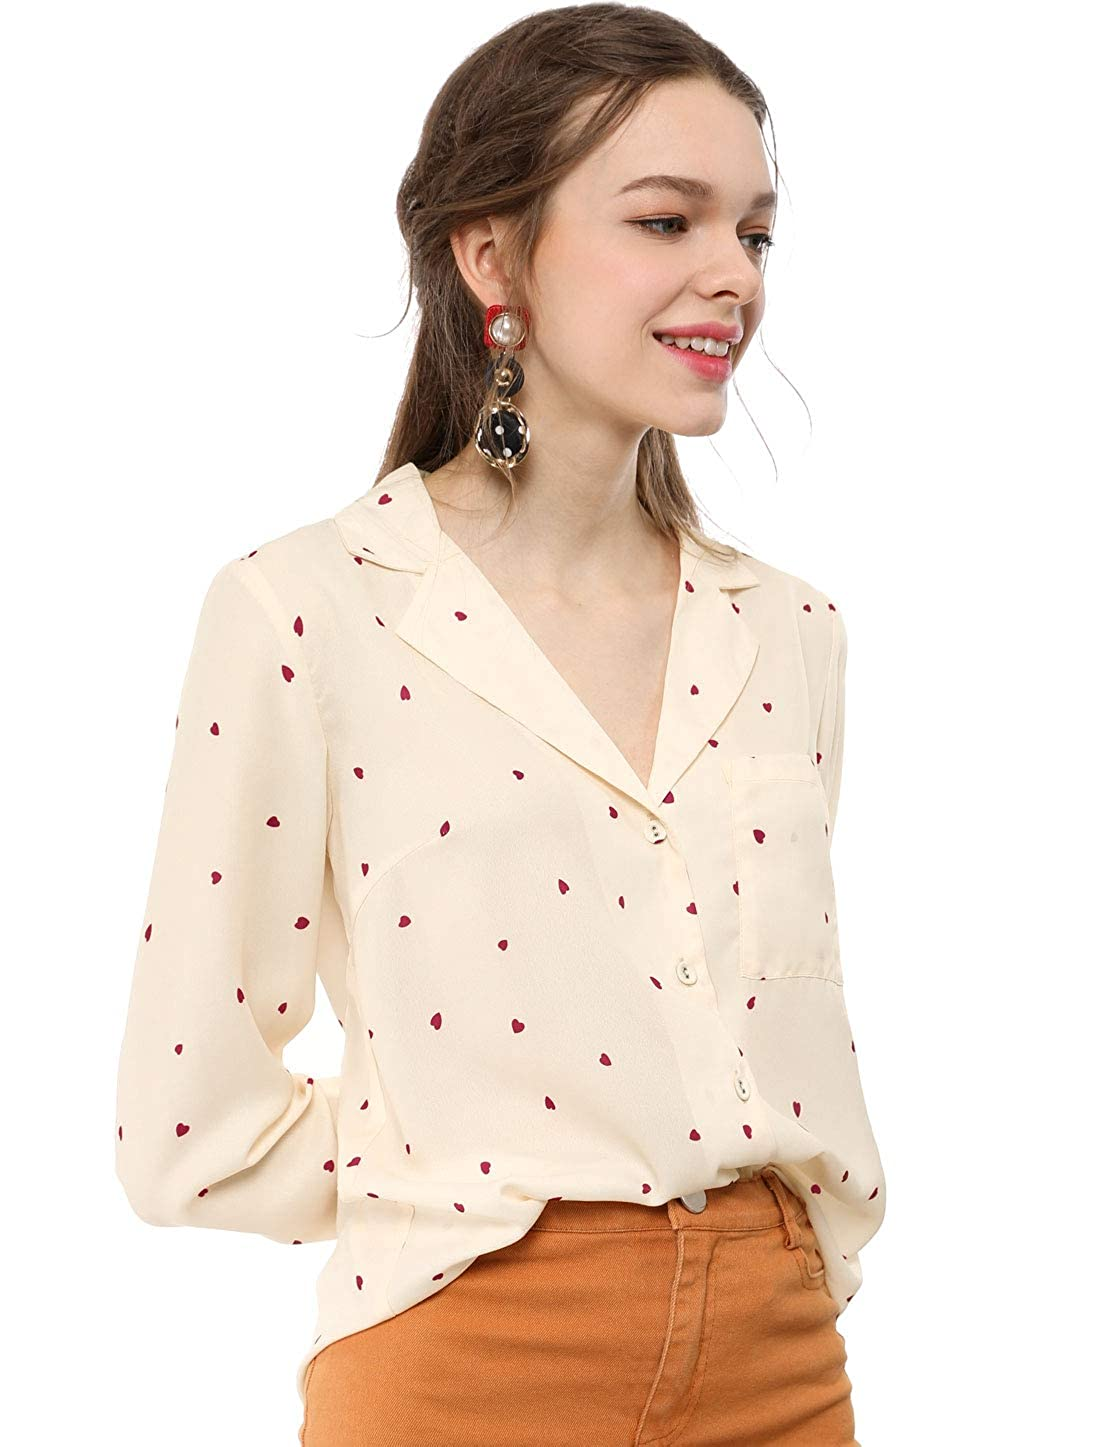 30e853014e Allegra K Women's Button Down Notched Lapel V Neck Long Sleeves Heart Polka  Dots Shirt Tops with Chest Pocket at Amazon Women's Clothing store: